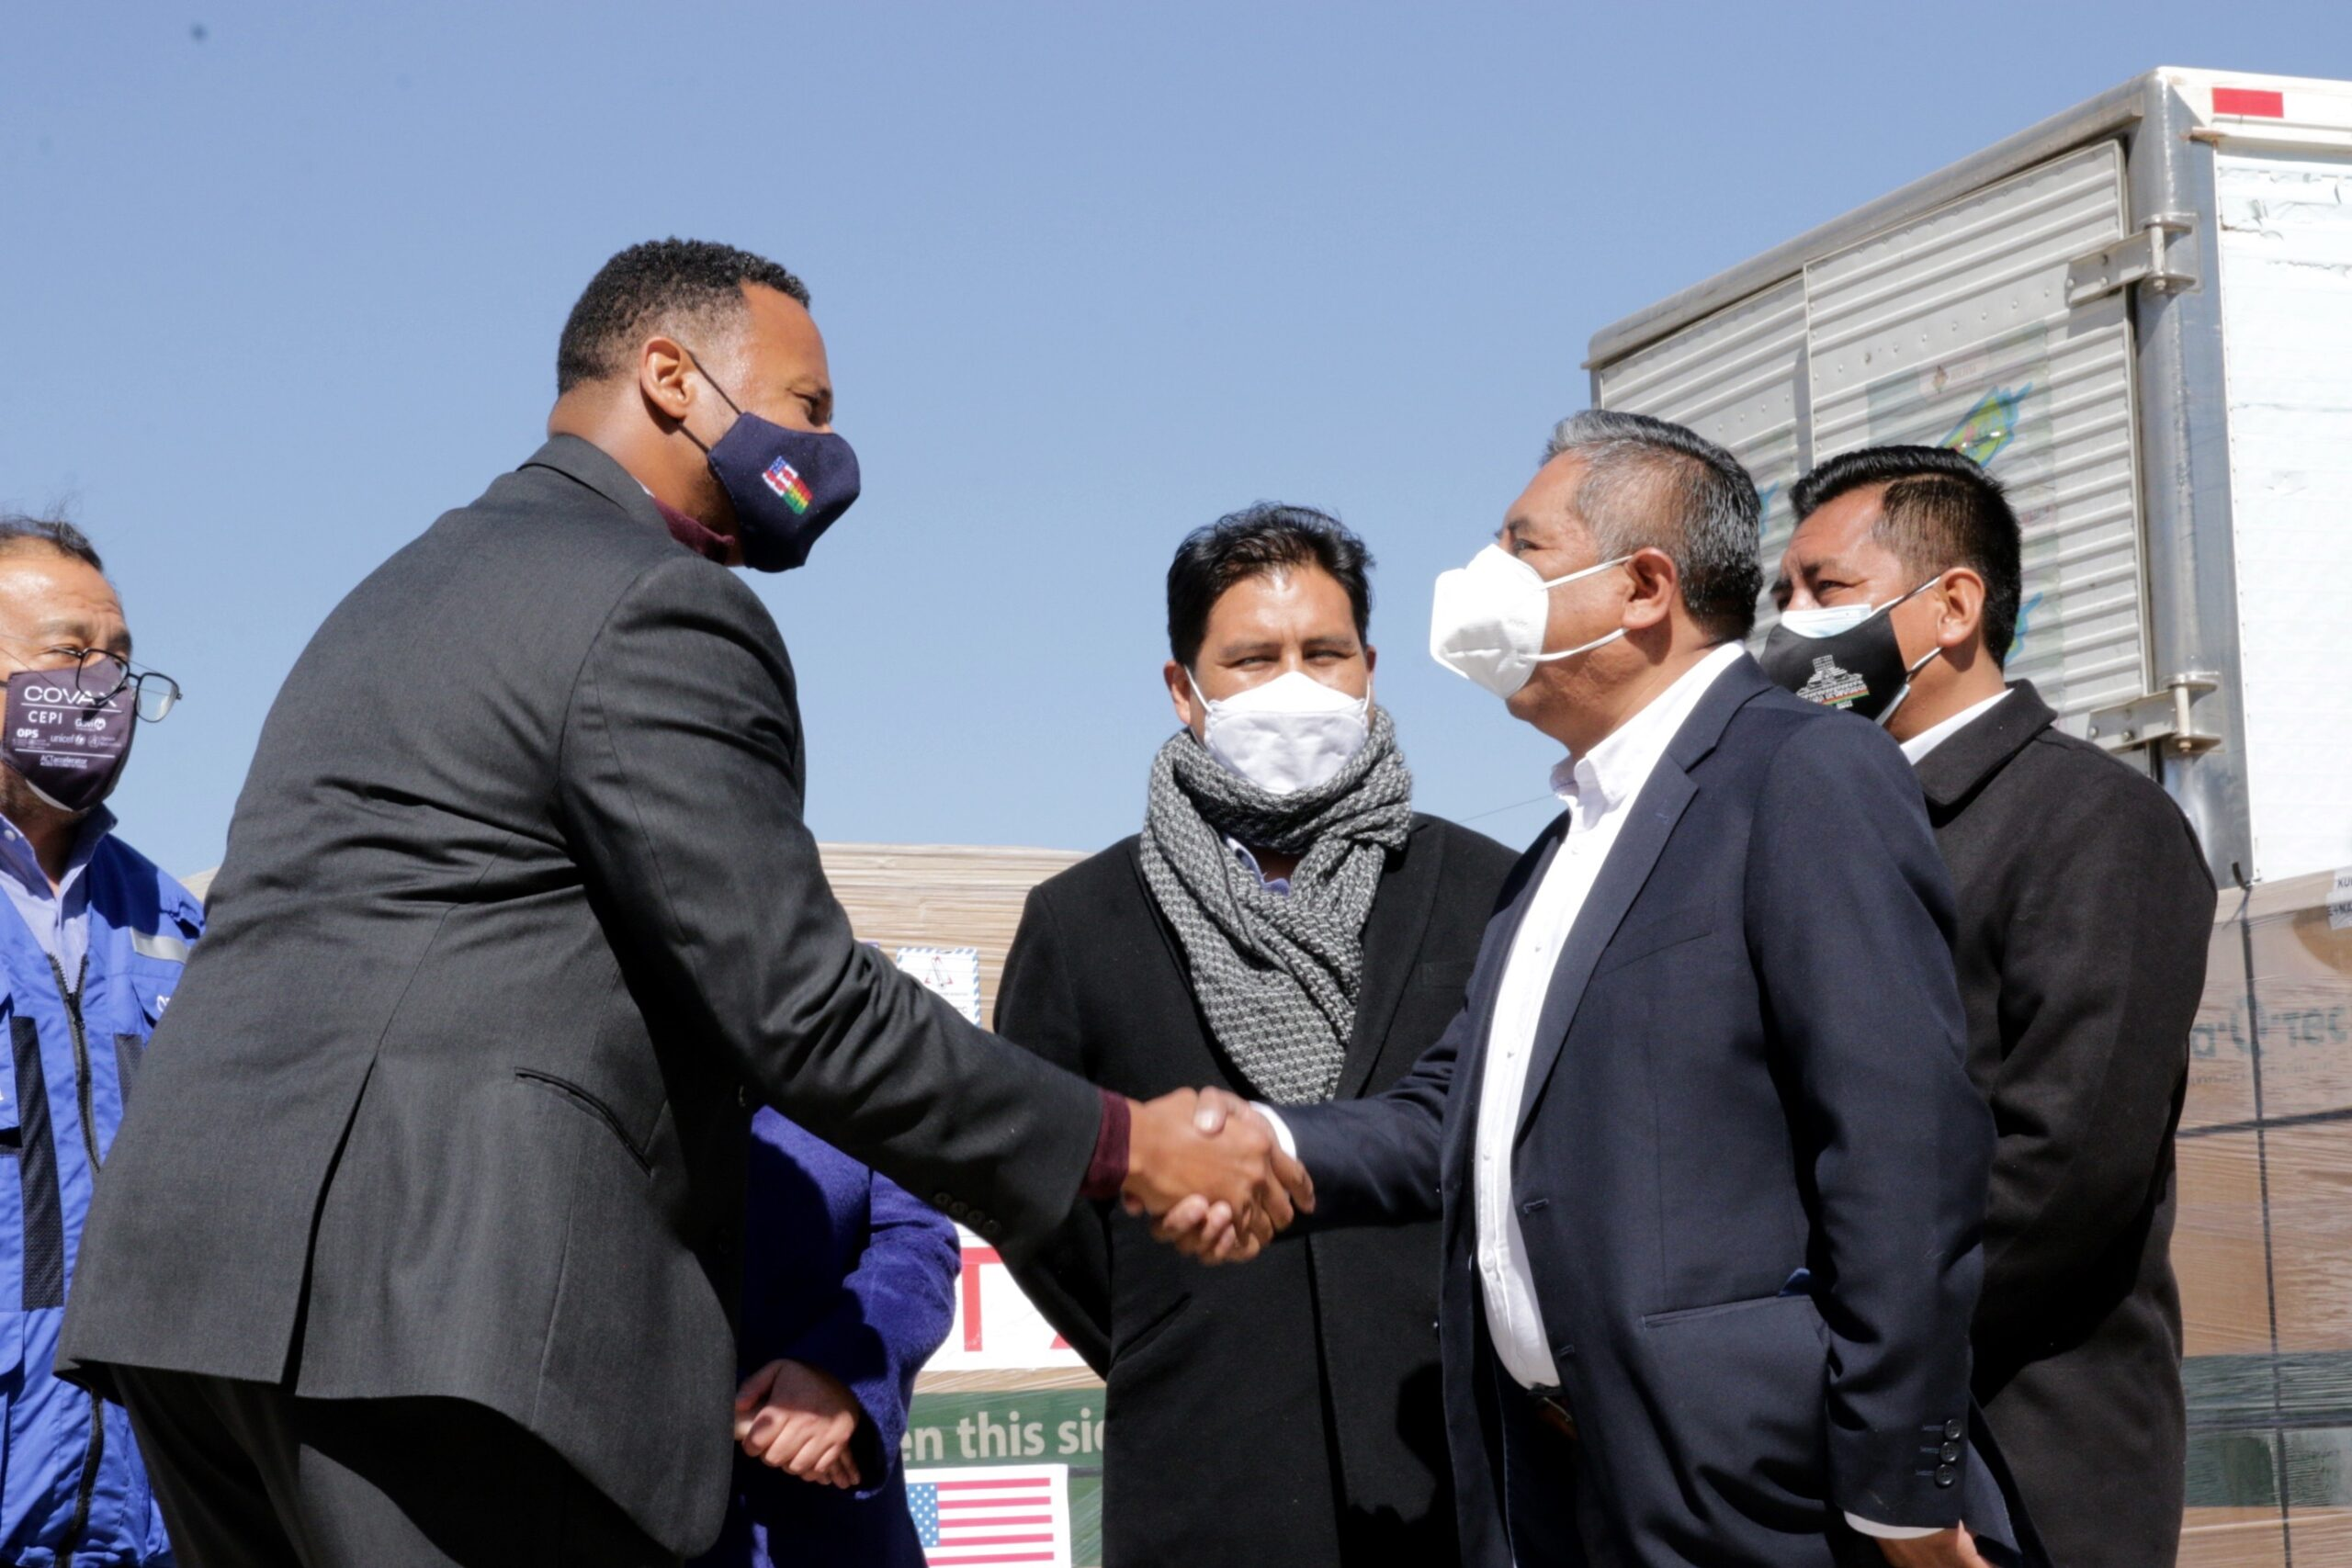 DCM Hillsman and Bolivian Foreign Minister Rogelio Mayta shakes hands at the arrival of more than 1M J&J vaccines donated by the U.S. to Bolivia.